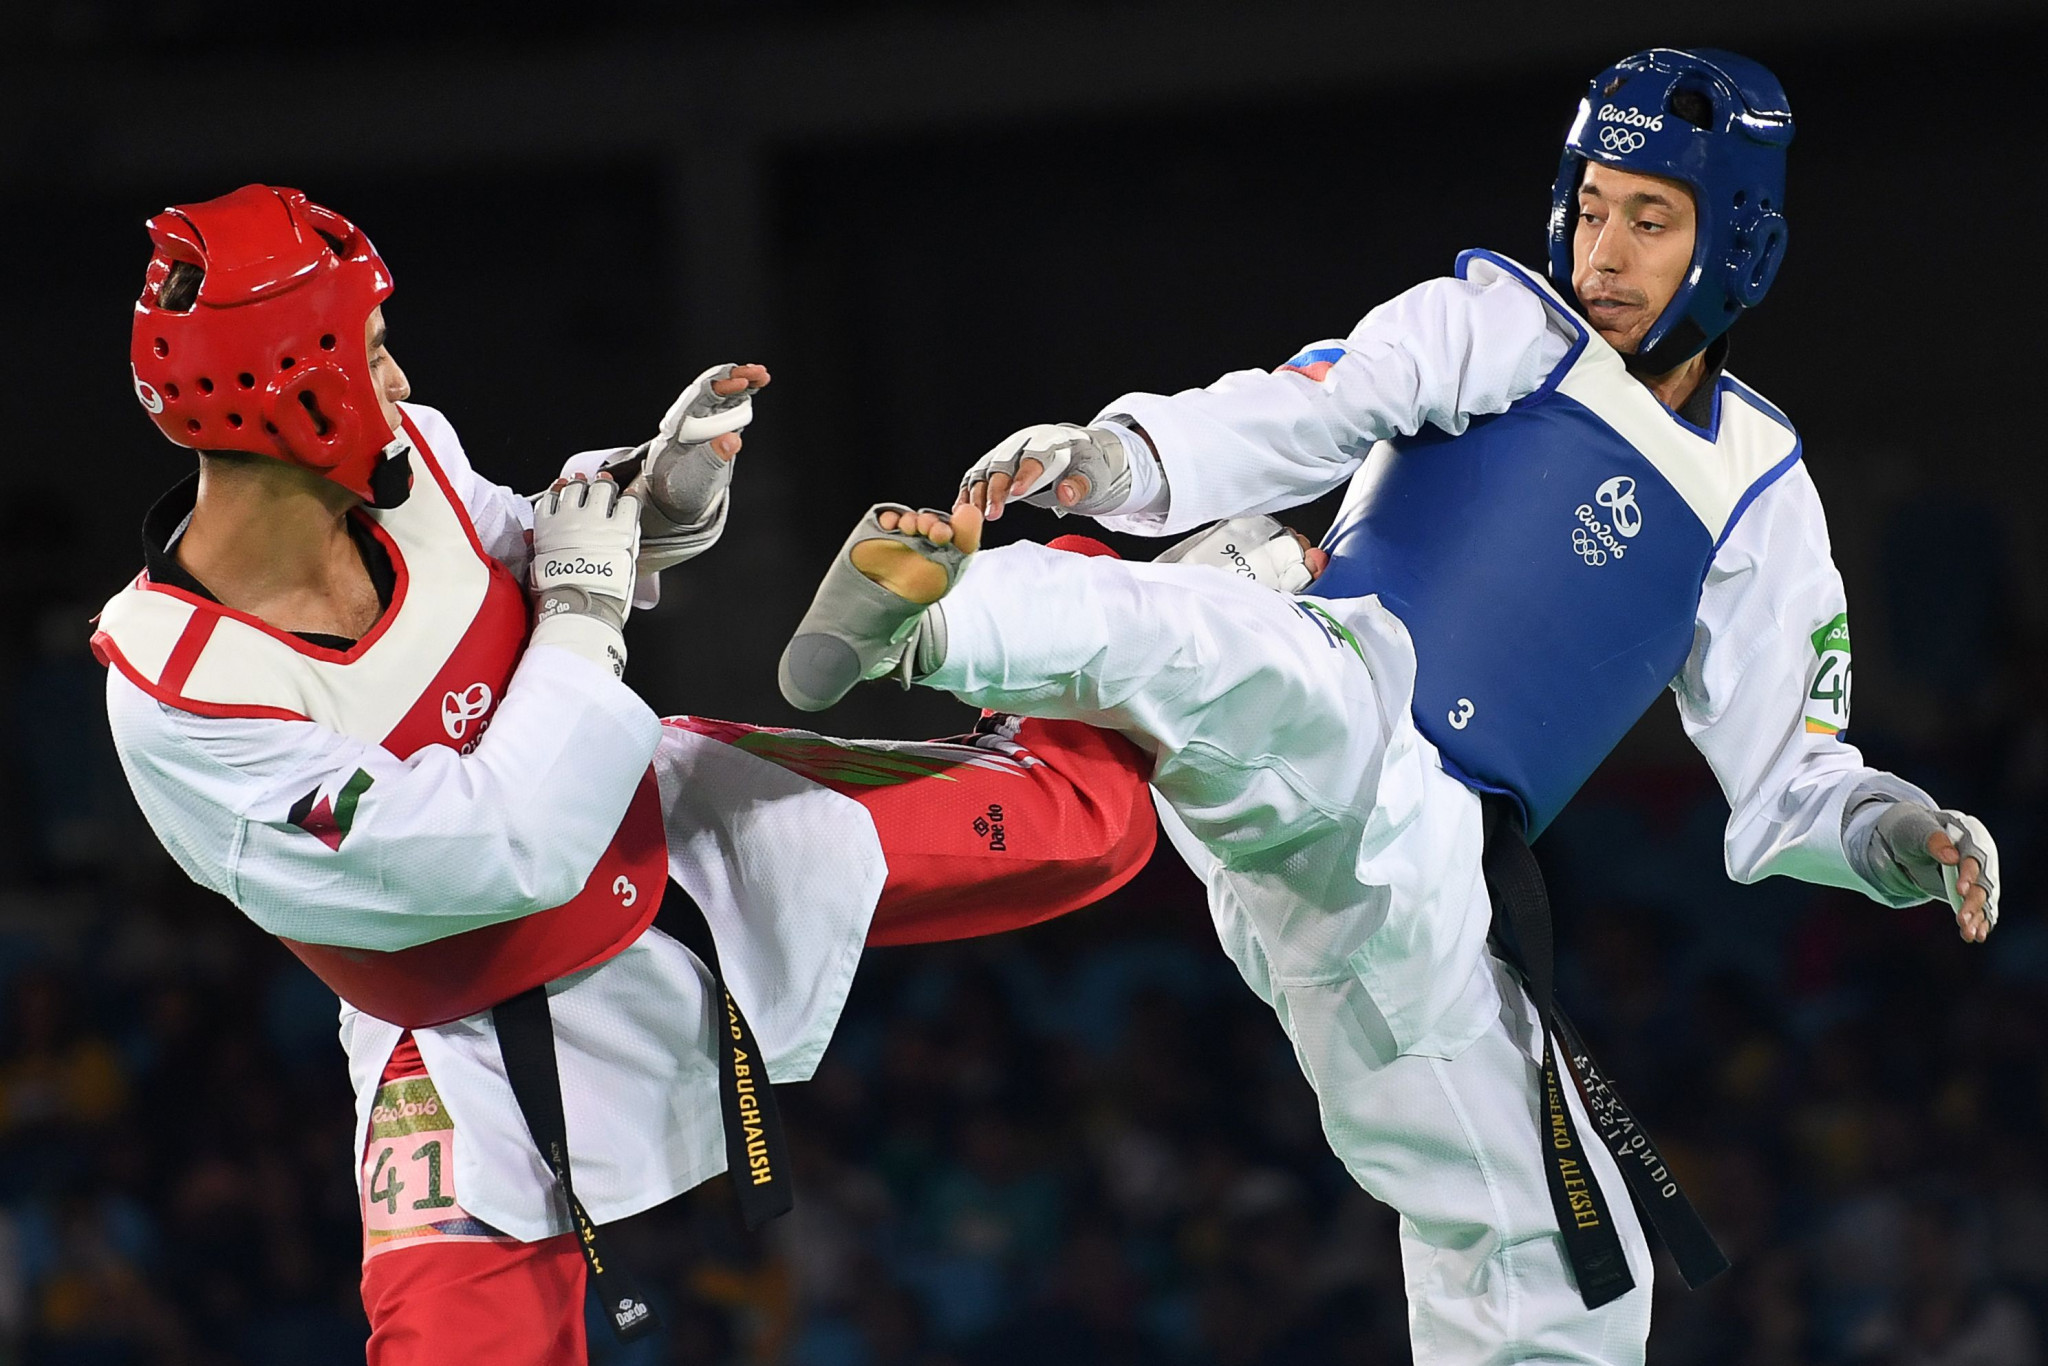 Alexey Denisenko, right, won Russia's fourth Olympic medal in taekwondo when he clinched the silver in the men's under-68kg category ©Getty Images